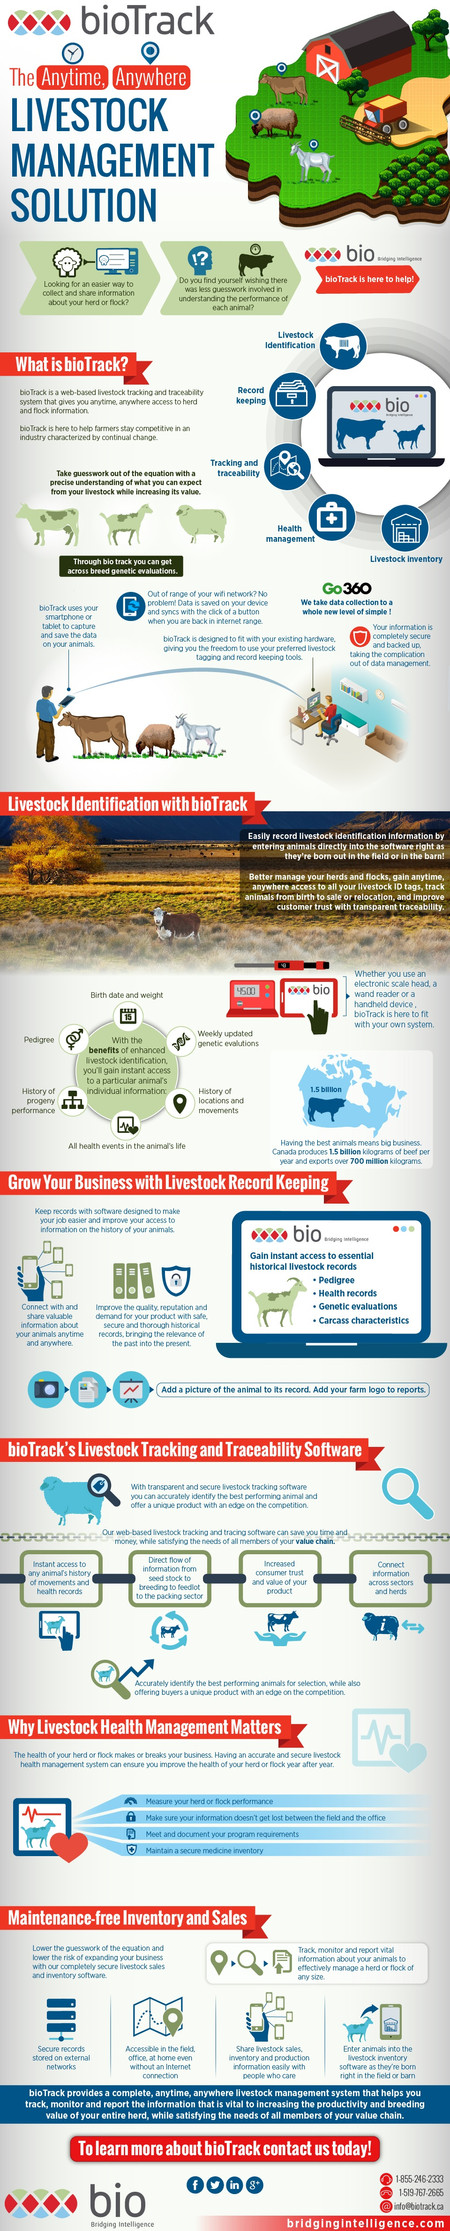 The Anytime, Anywhere Livestock Manageme